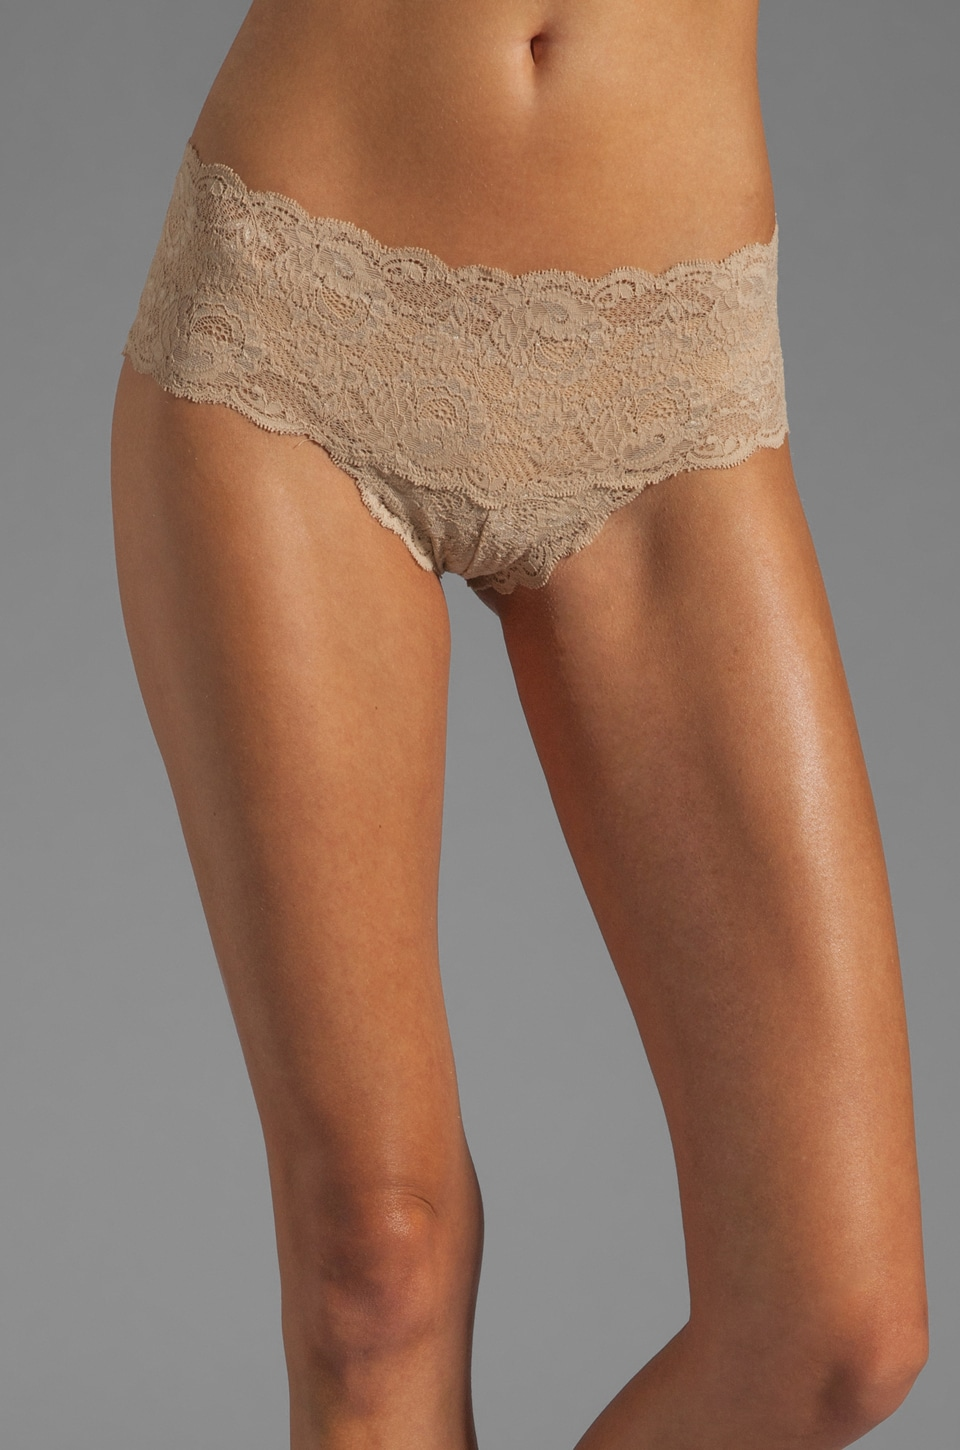 Cosabella Never Say Never Hottie Hotpant in Warm Taupe